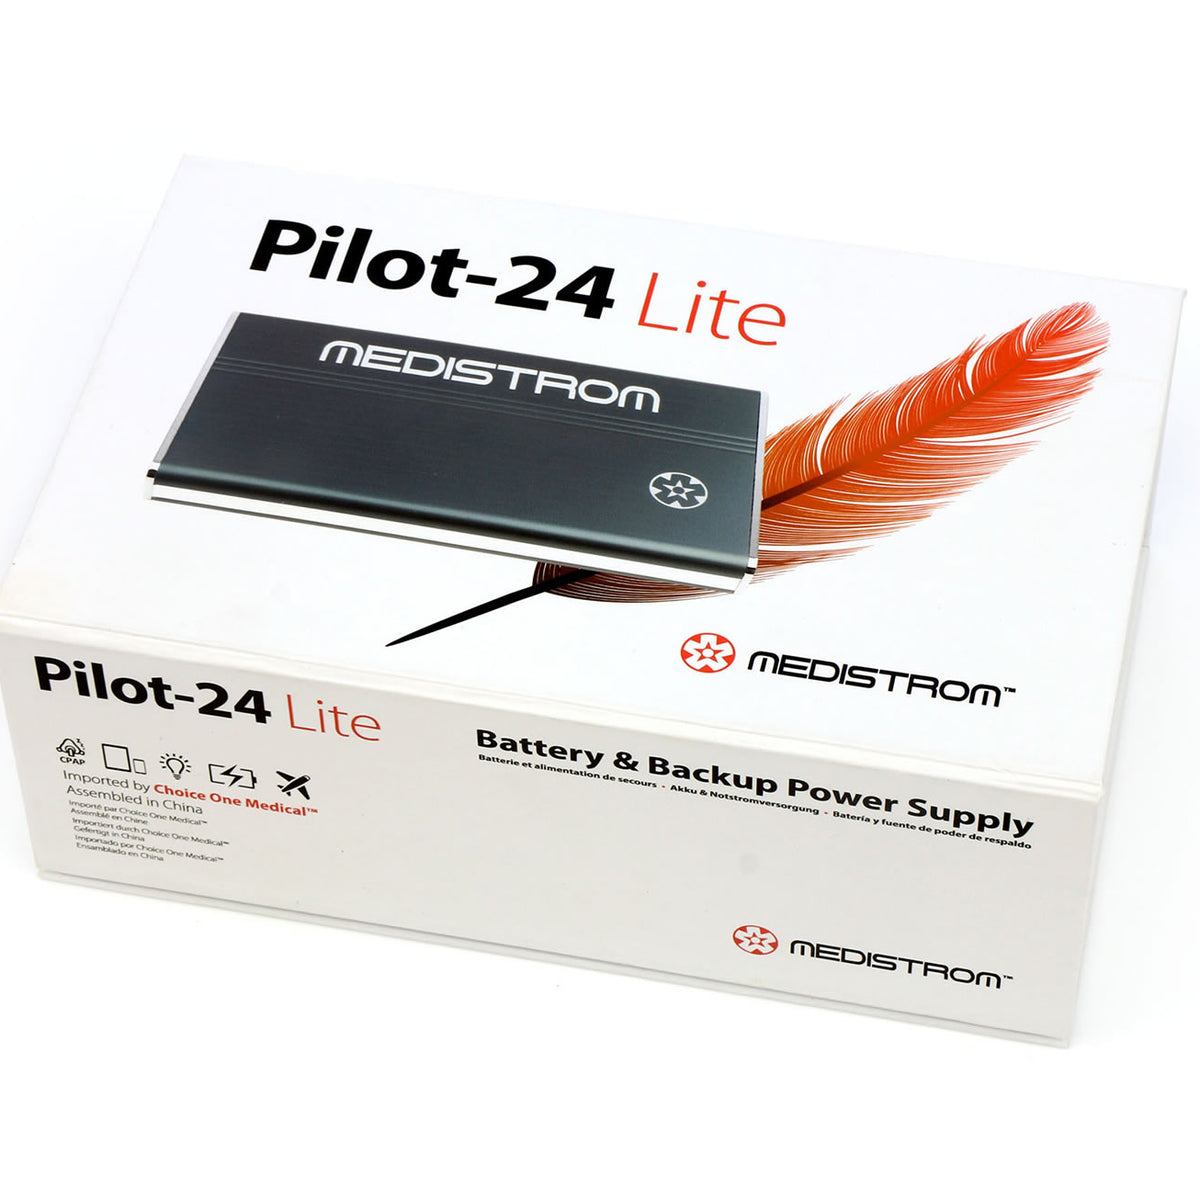 Packaging for Pilot-24 Power Supply